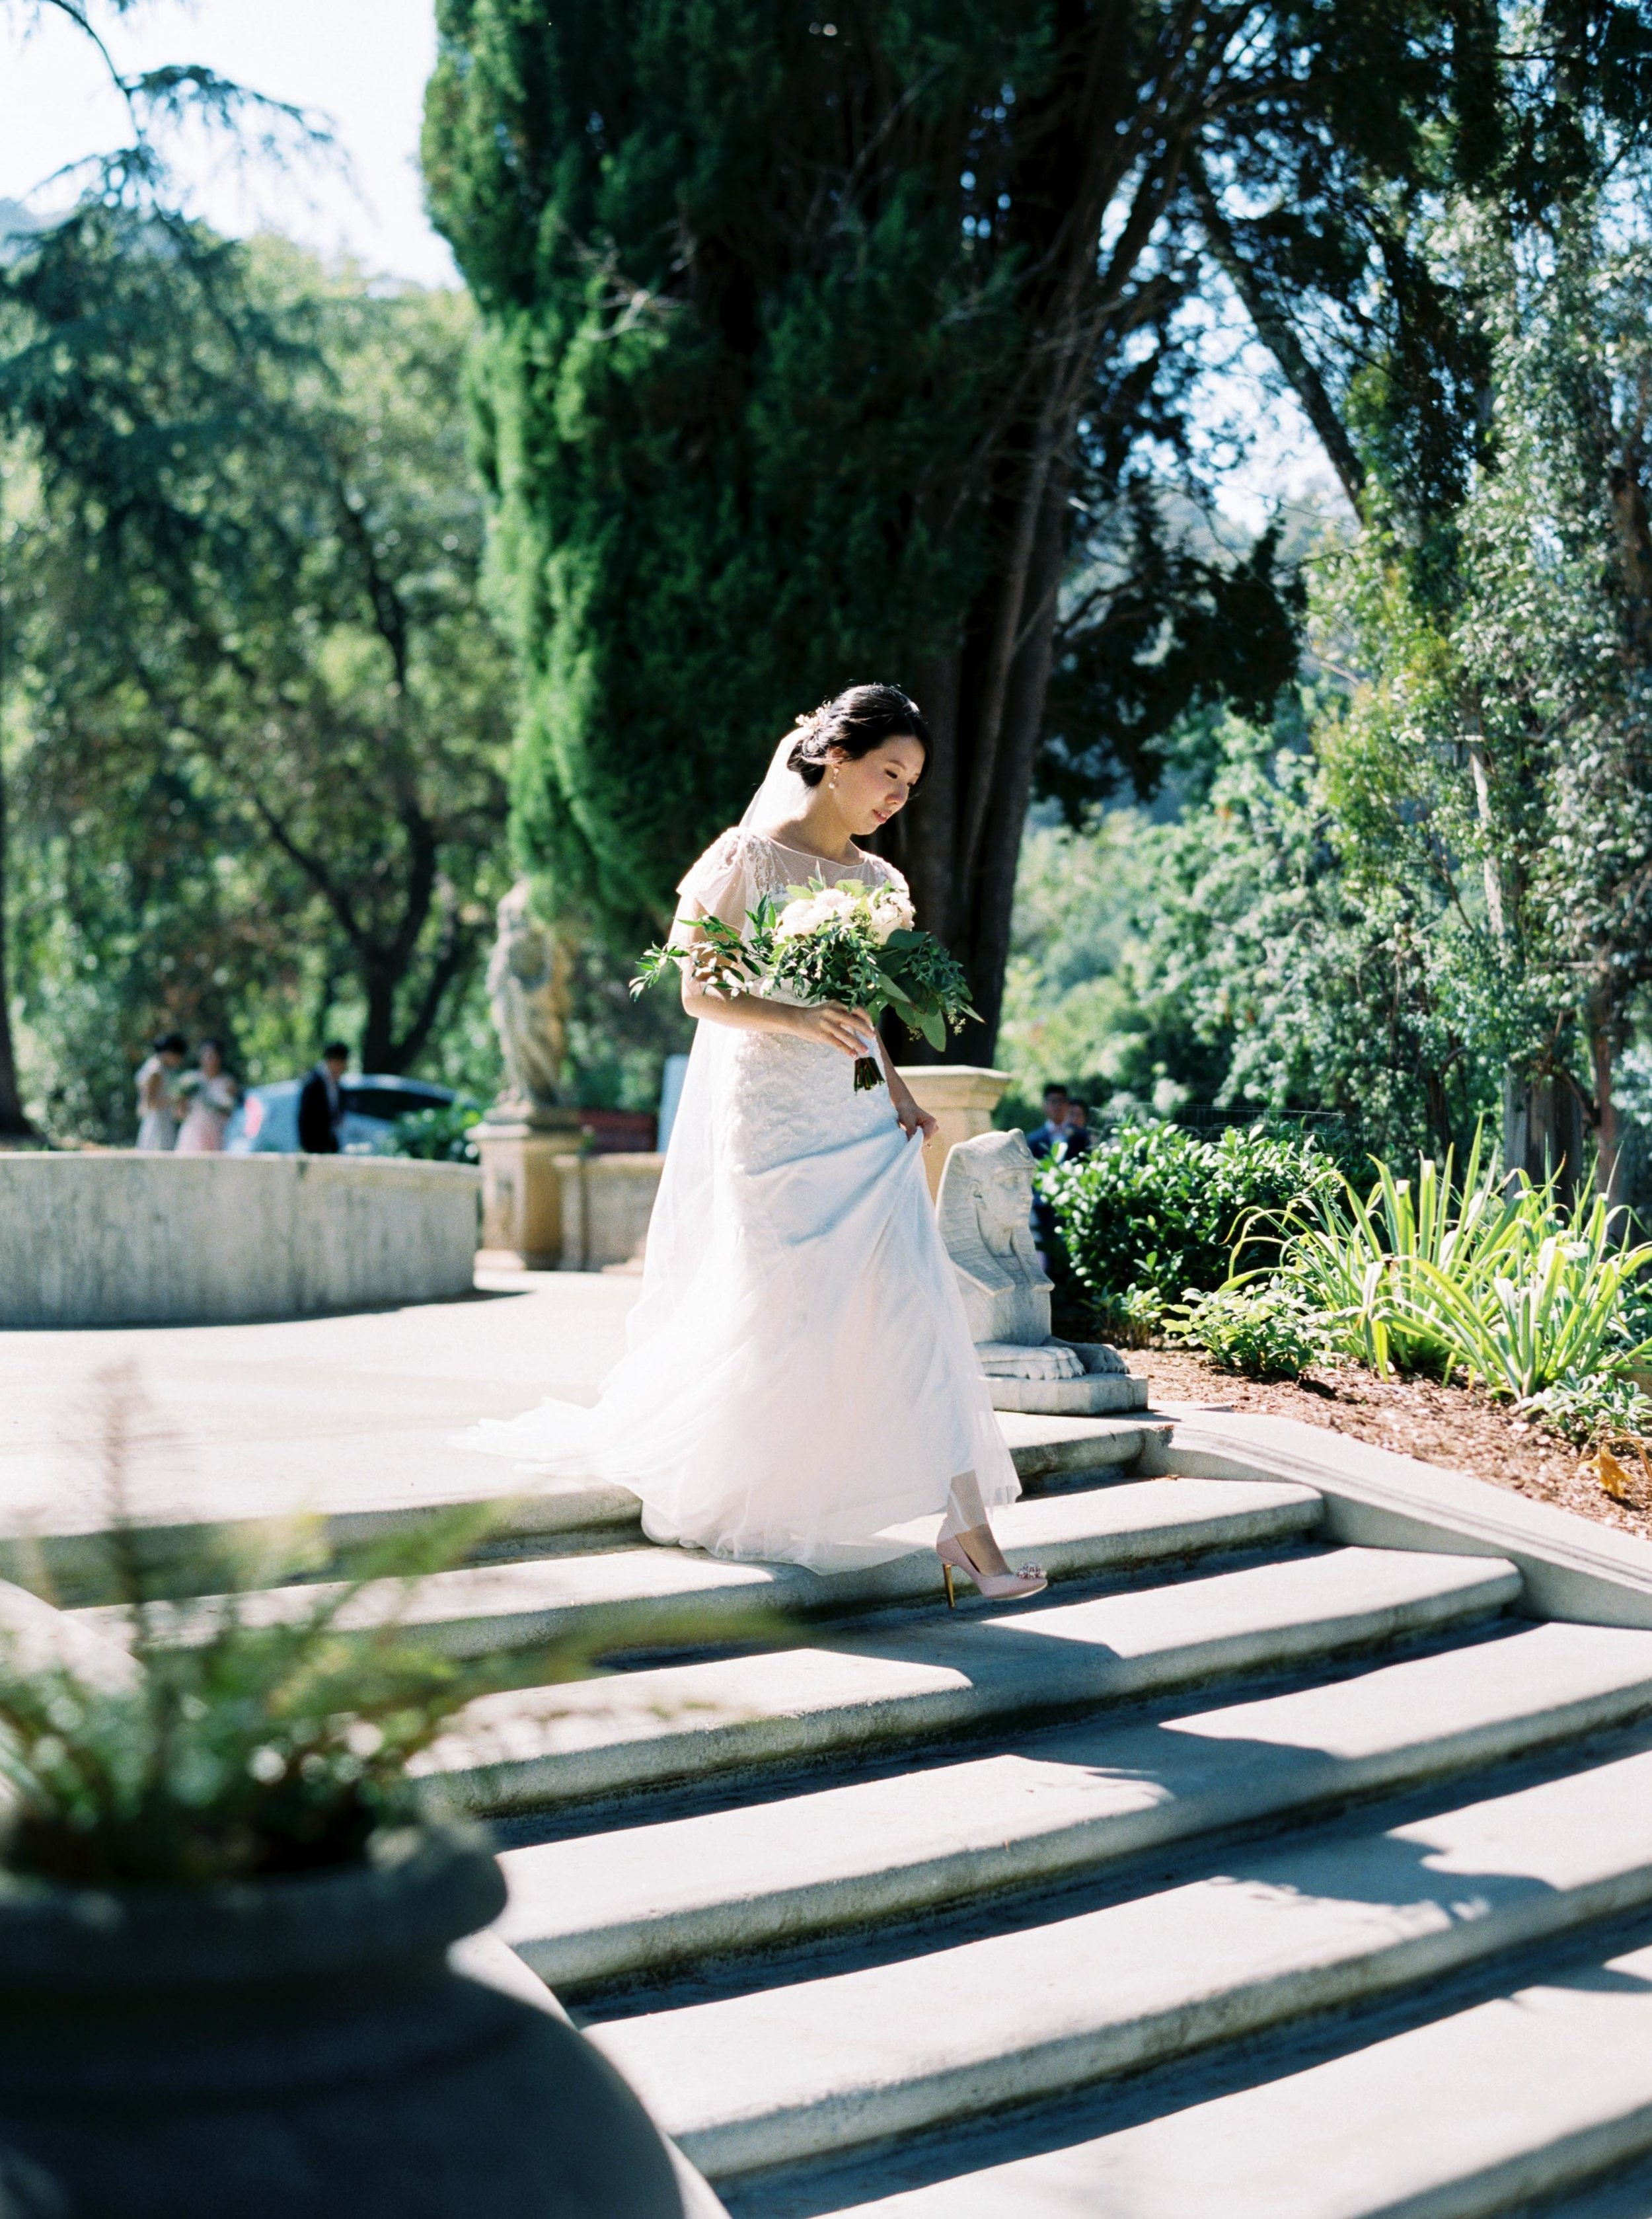 Villa_Montalvo_Wedding_Photographer_Videographer_San_Francisco064.jpg